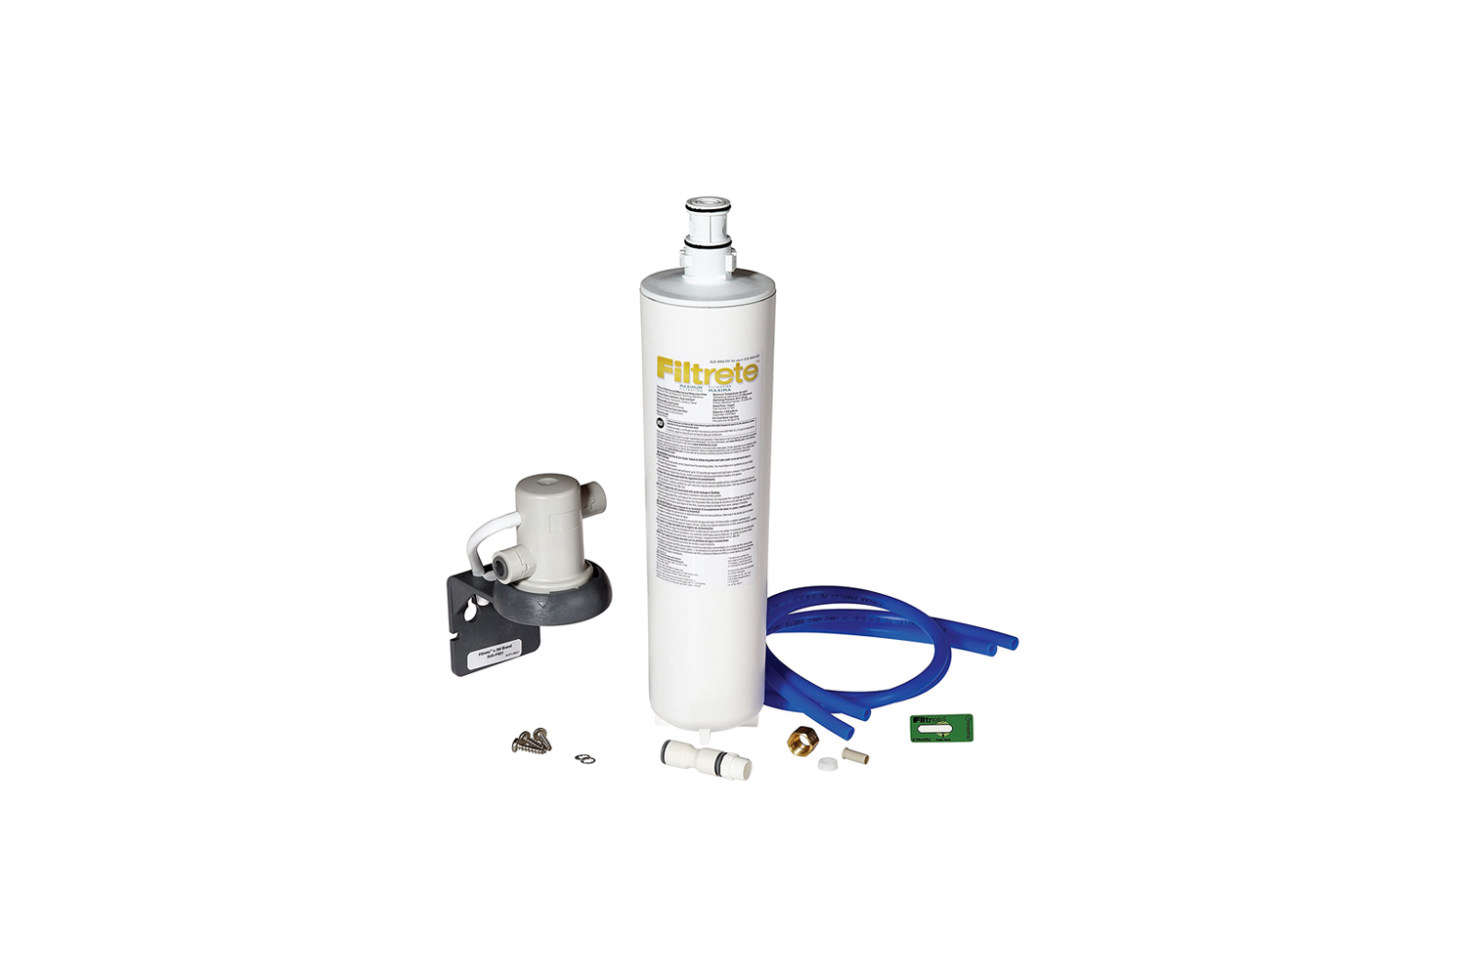 The Filtrete Maximum Under Sink Water Filtration System is a super-budget option for under $50 with still fairly decent filtration, though not as intensive as the others on this list. A great DIY option for those living in areas with high quality water, the filter reduces lead, microbes, chlorine taste and order, and 0.5 microns of TDS. Working with a single filter, the system is available with standard, advanced, or maximum (shown) filter options; $48.33 at Amazon.